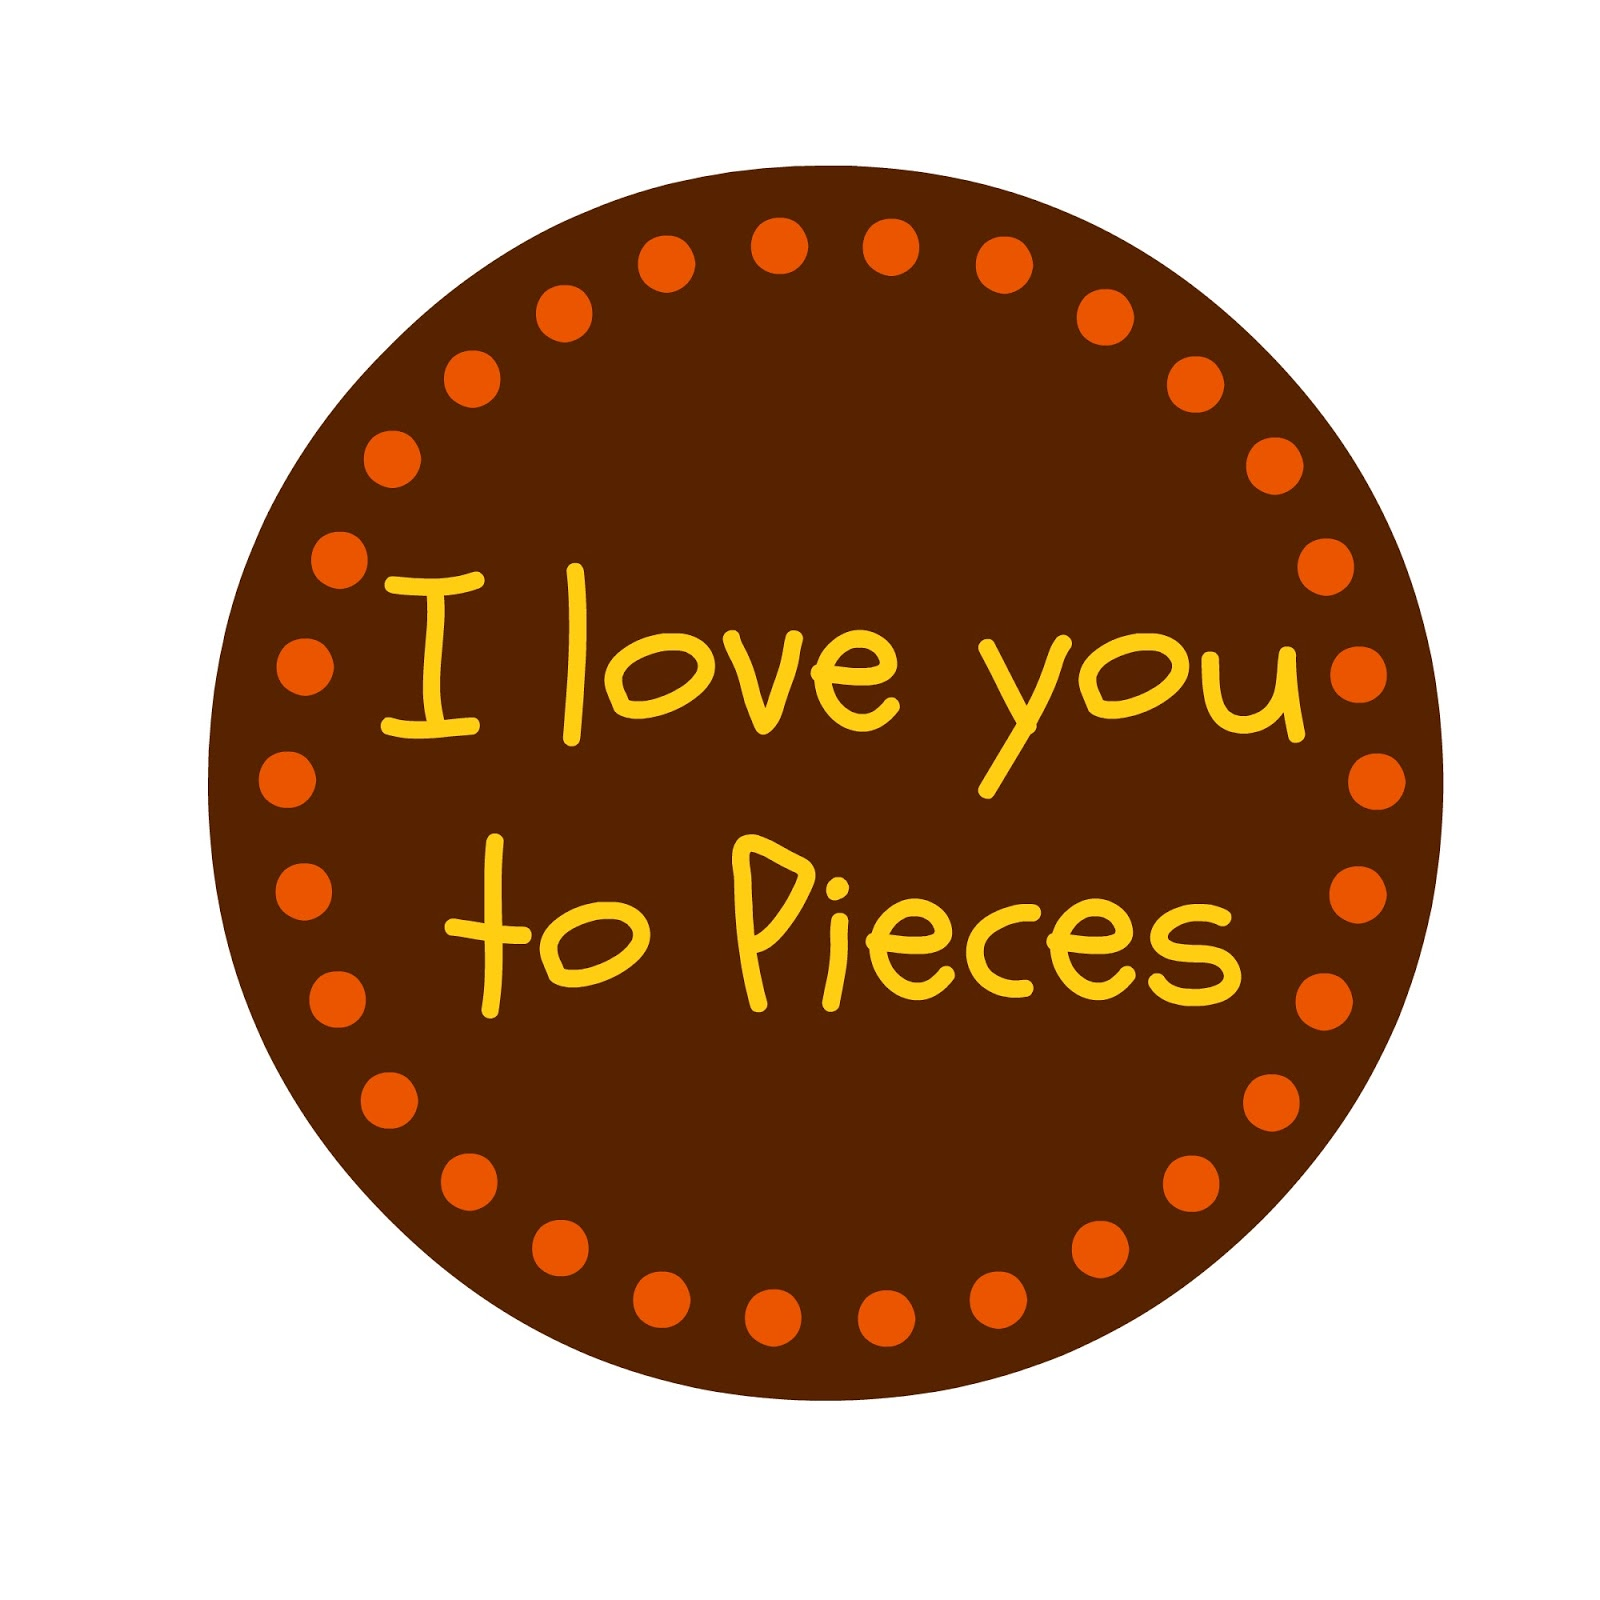 5 Images of Love You To Pieces Printable